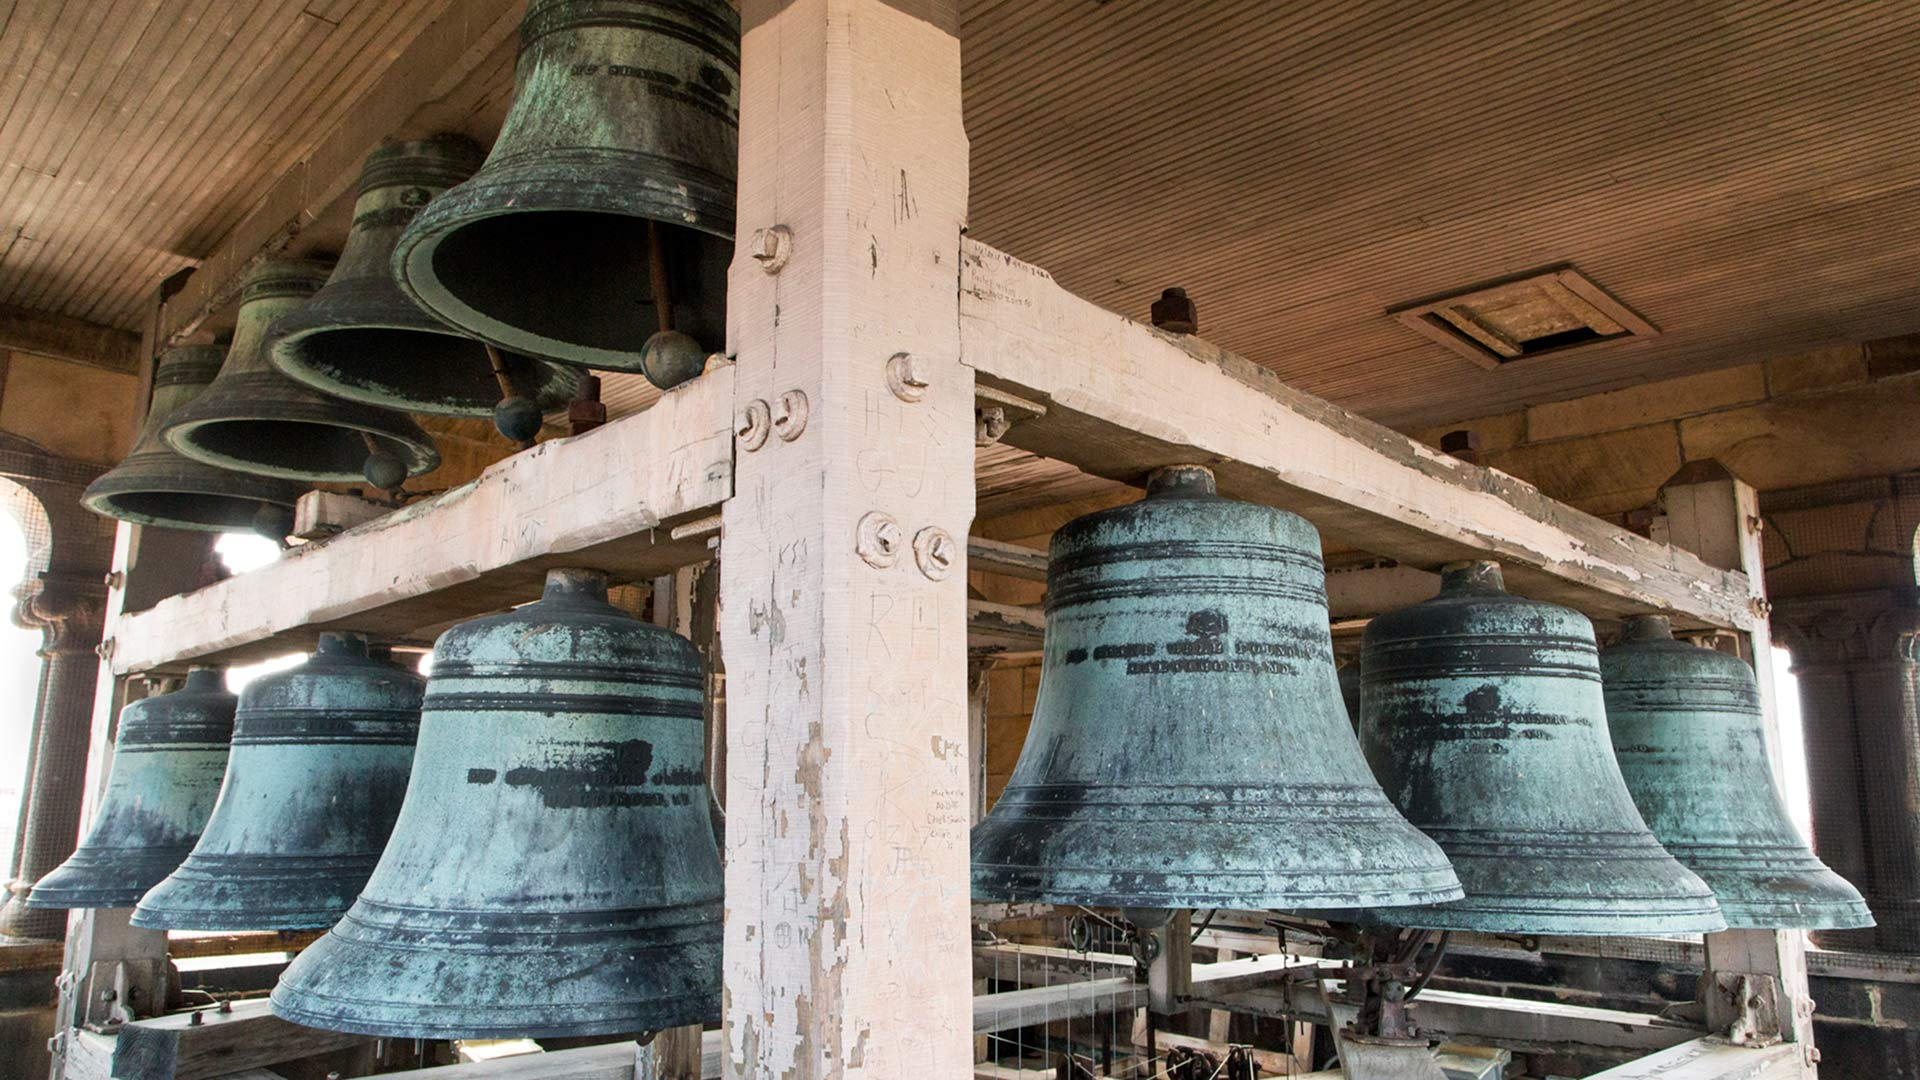 Large bells, textured bluish gray hanging from wooden beams